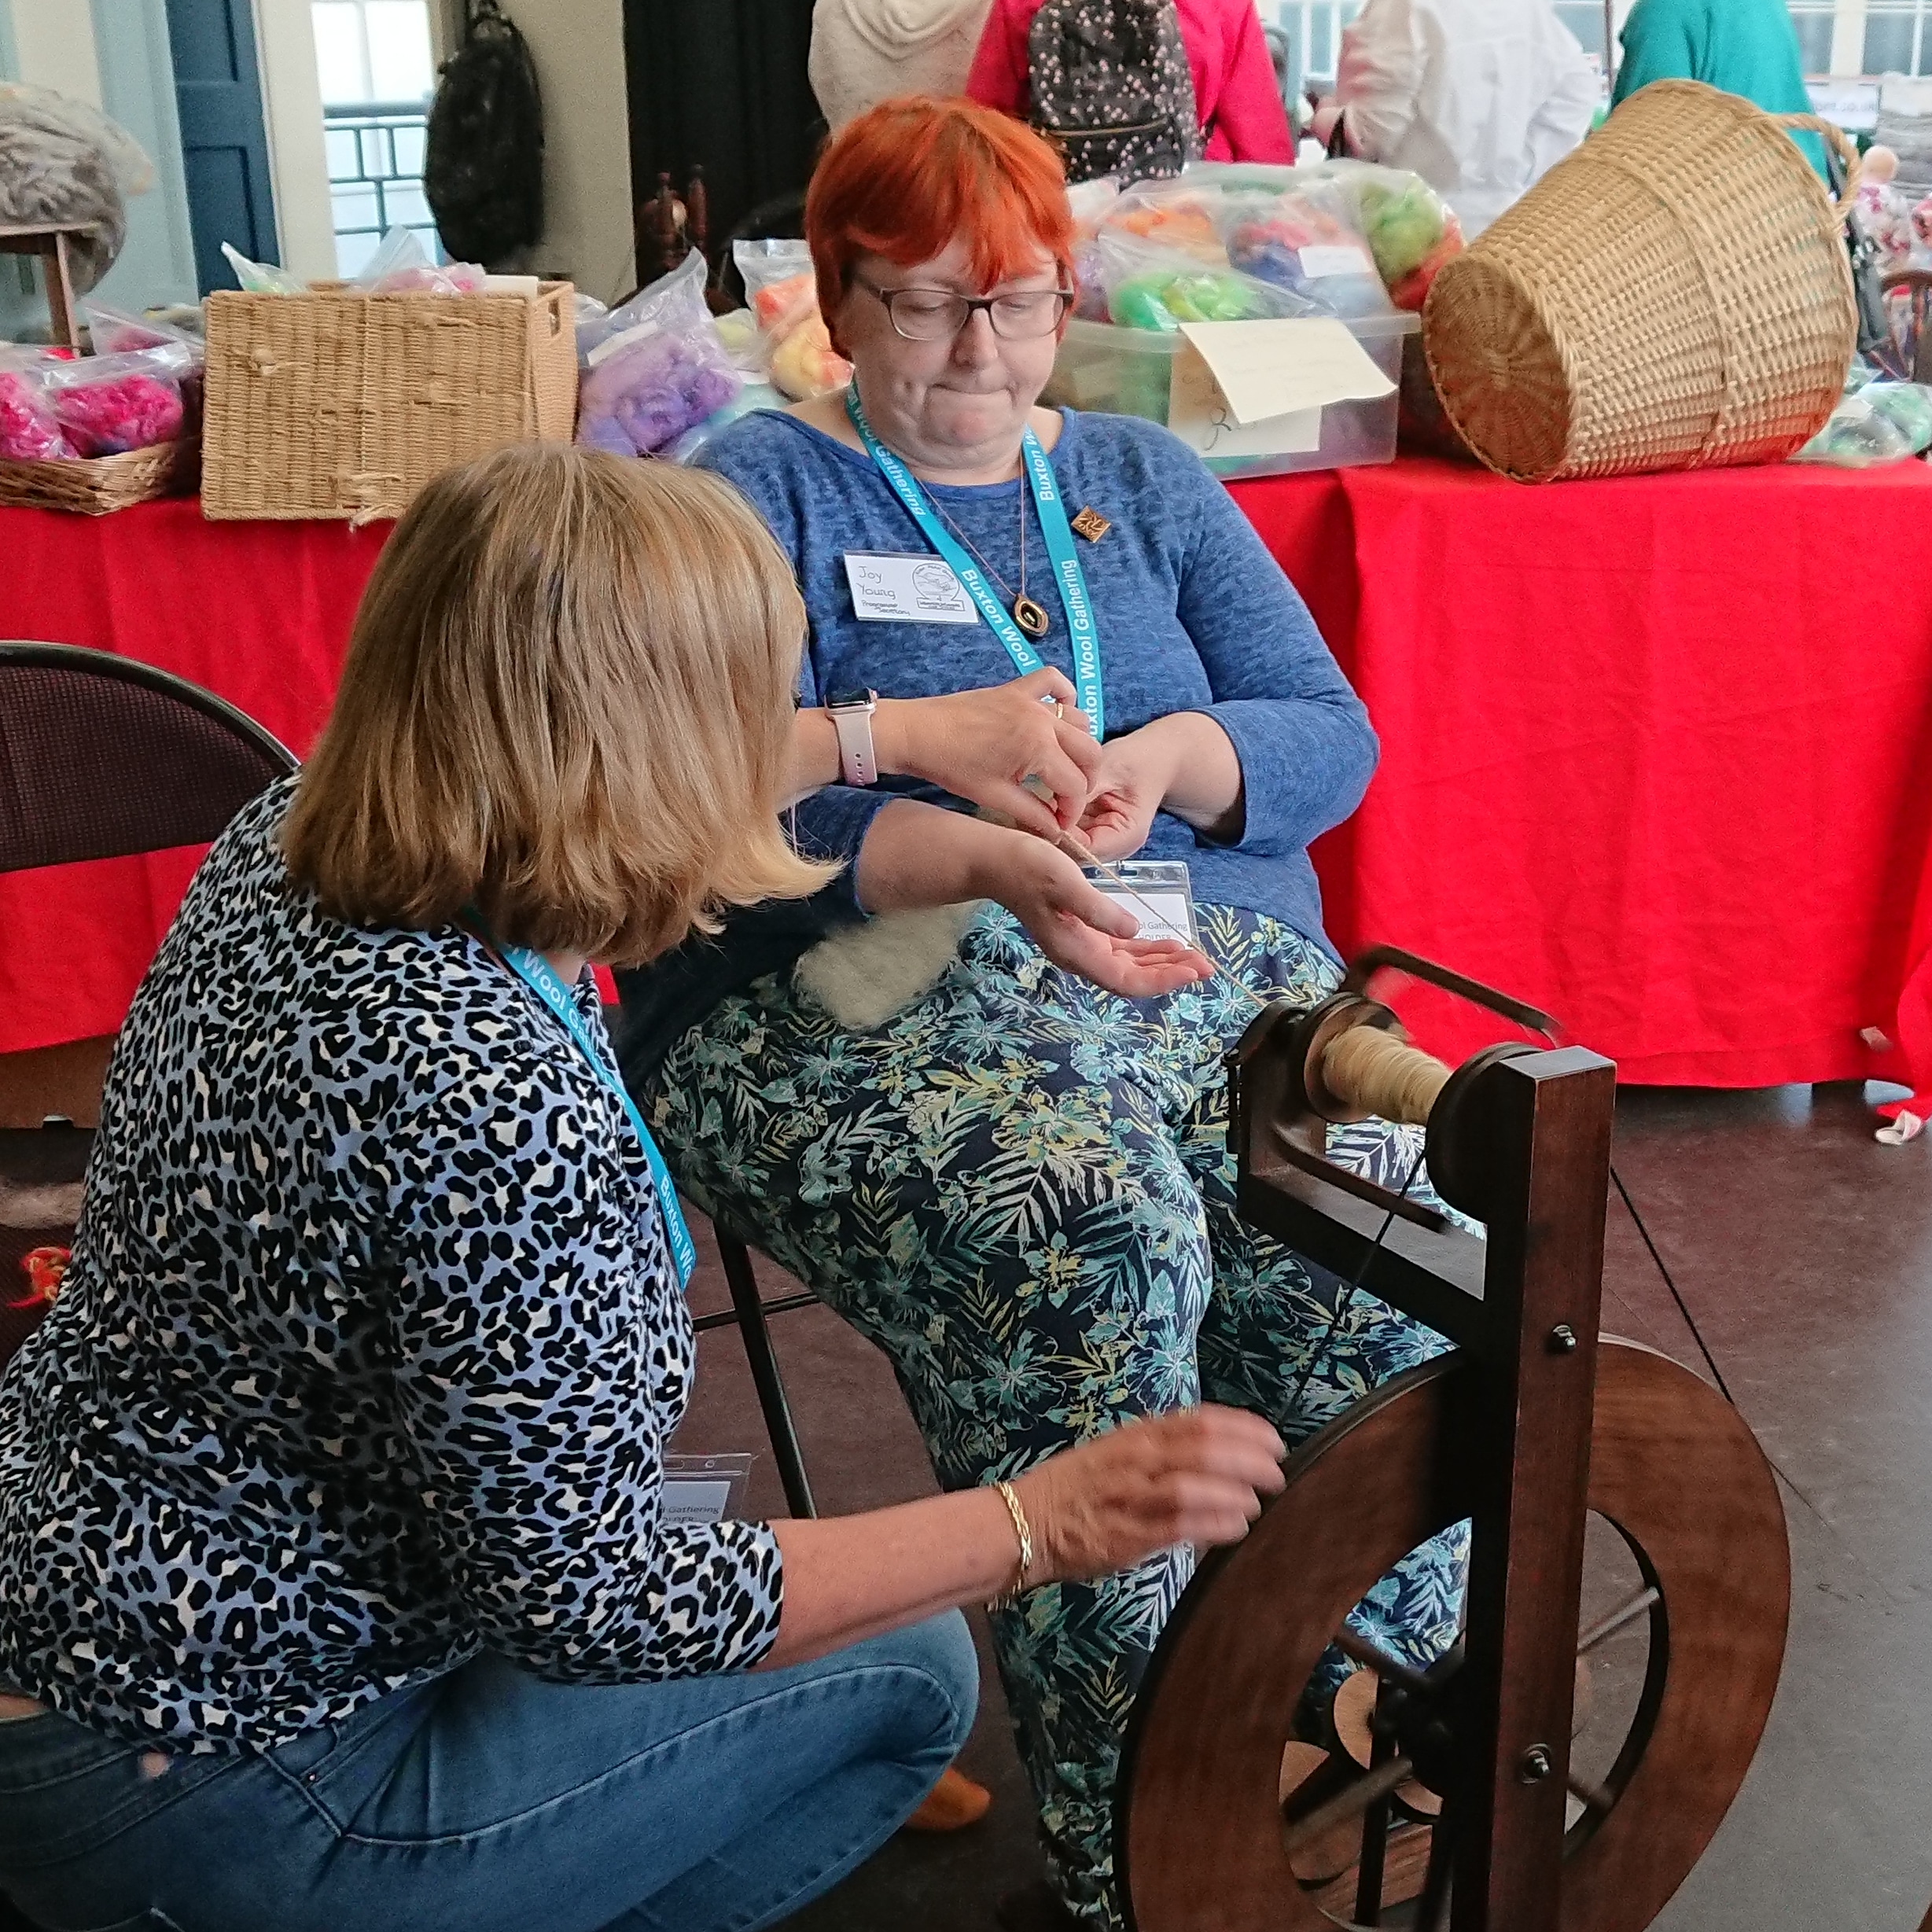 Two women sit next to a spinning wheel, one facing the wheel whilst the other, with bright red hair and a very determined face, is trying to learn to spin.